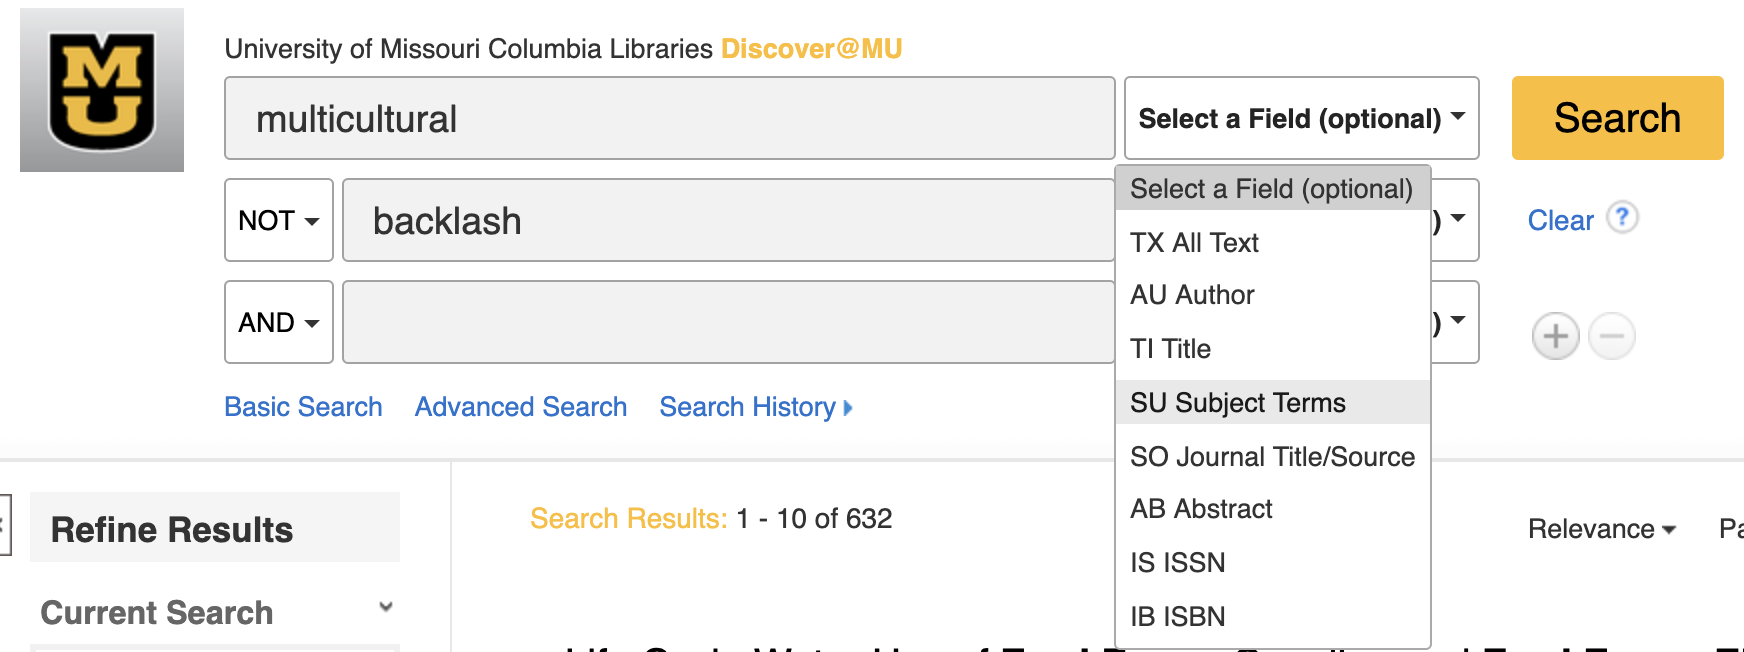 Change select a field to SU Subject Terms